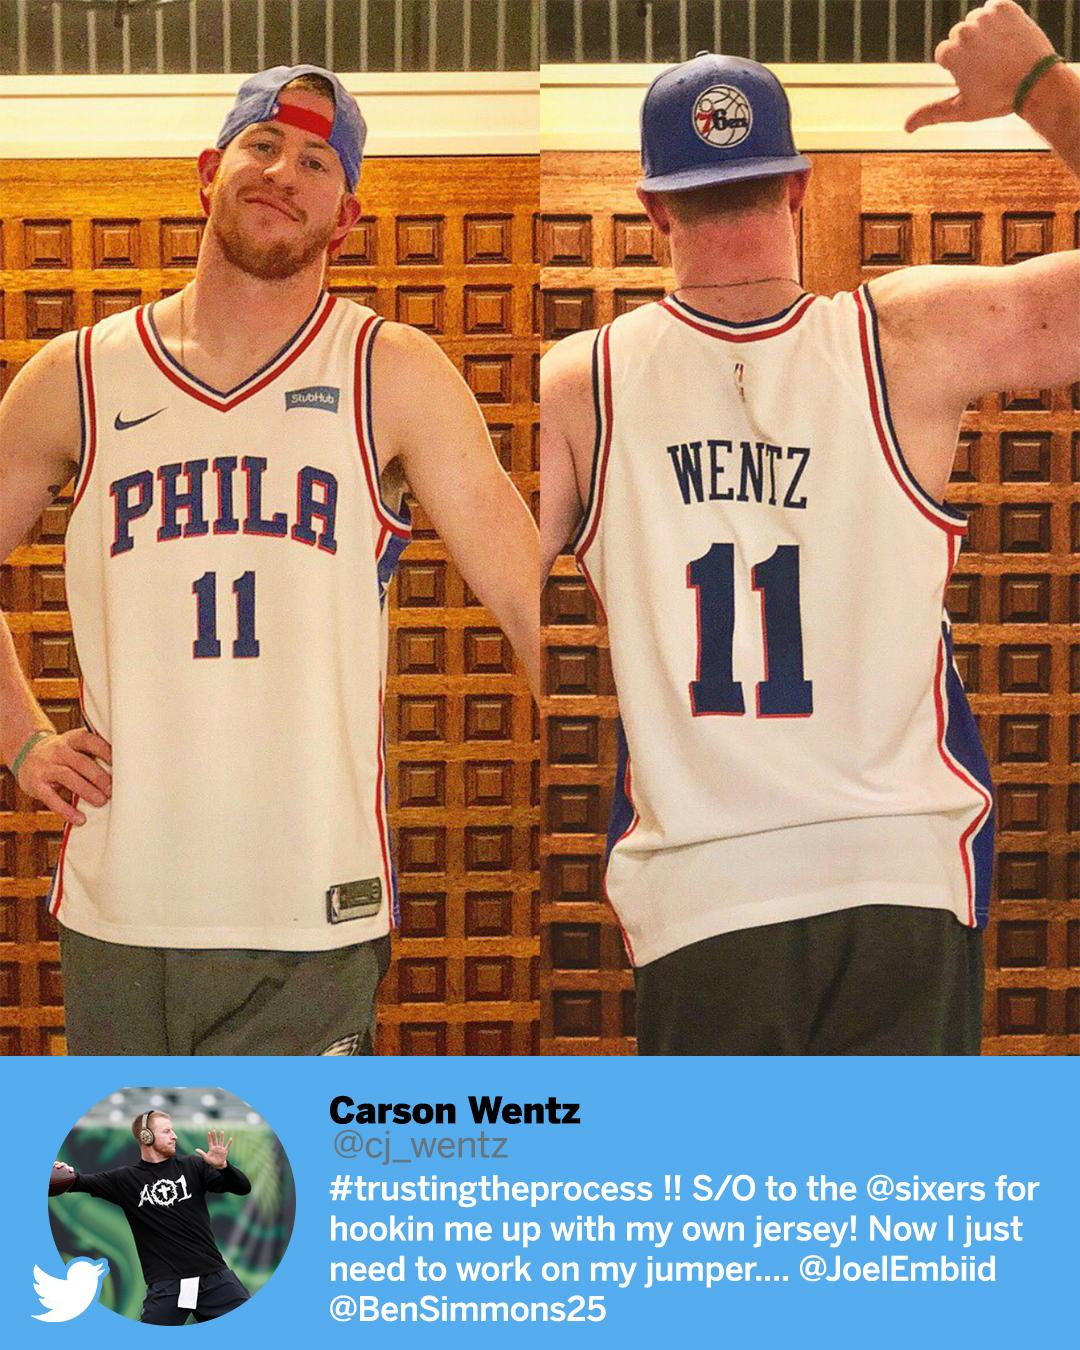 Carson Wentz trusts the process. https://t.co/ro9NVR2TOg